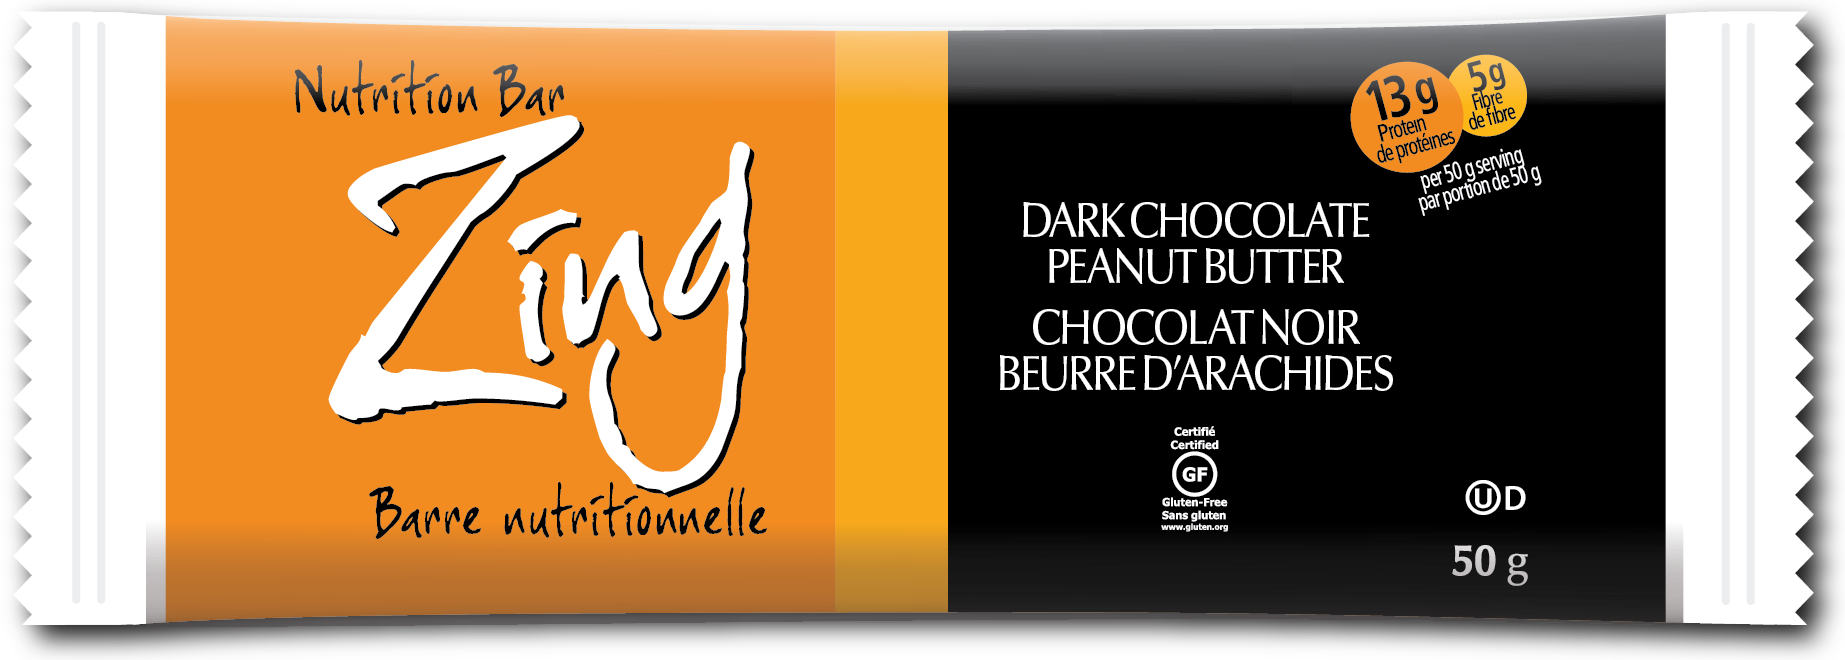 Zing Nutrition Bar - Dark Chocolate Peanut Butter